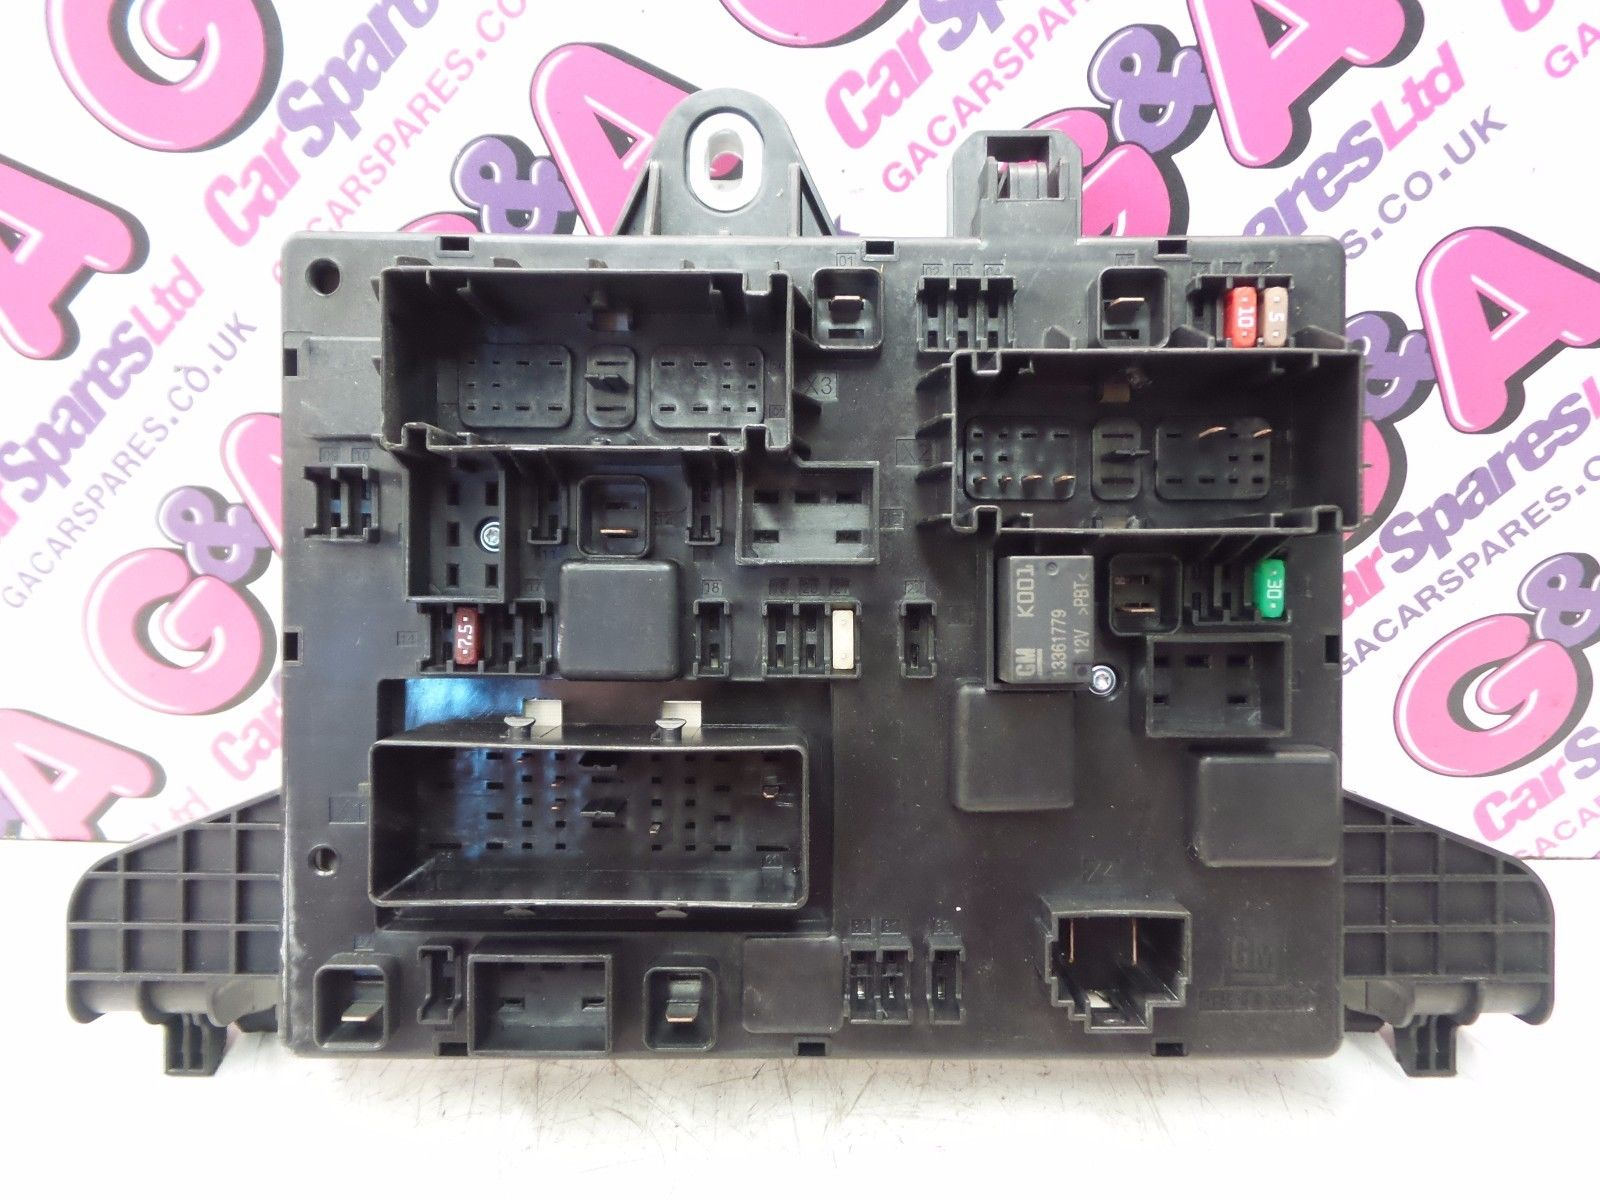 VAUXHALL ASTRA GTC 1.6 16V PETROL TURBO REAR FUSE BOARD / FUSE BOX 2011-2015